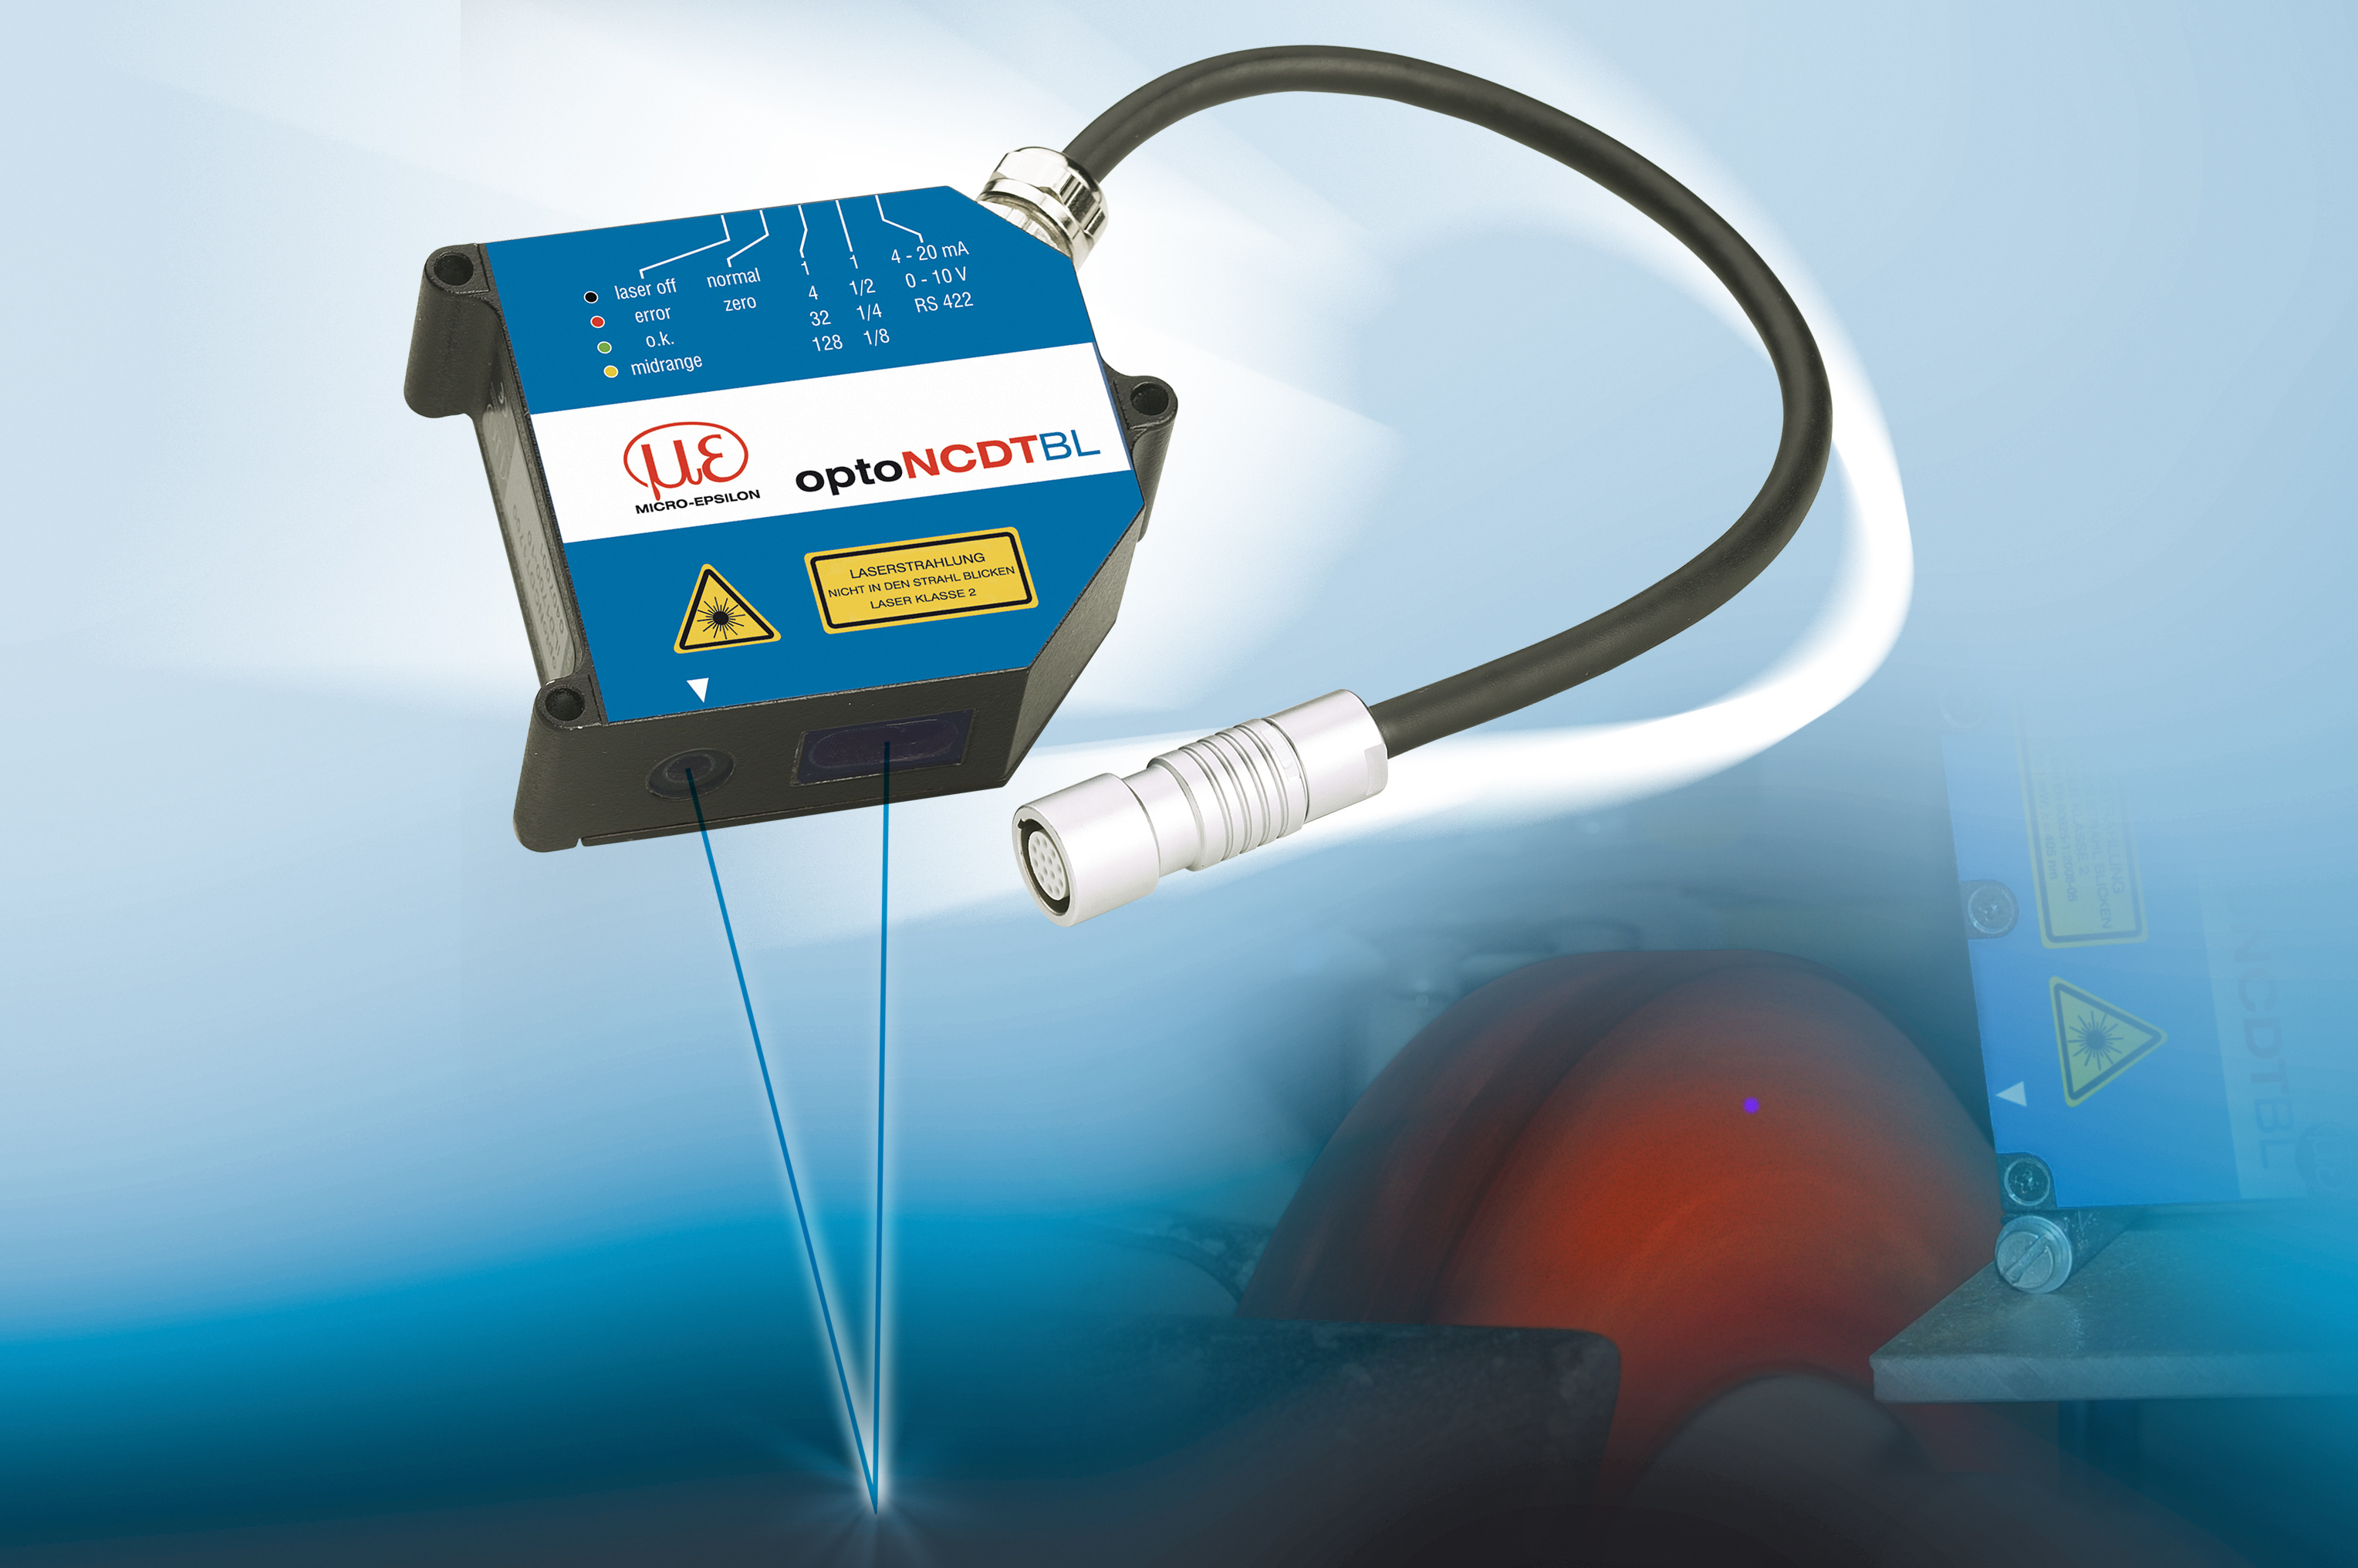 Distance And Profile Measurement Using Blue Lasers Engineer Live Diode Measurements Electronic Laser Triangulation Sensors With A Measure Reliably At High Precision Even On Red Hot Glowing Metals Silicon